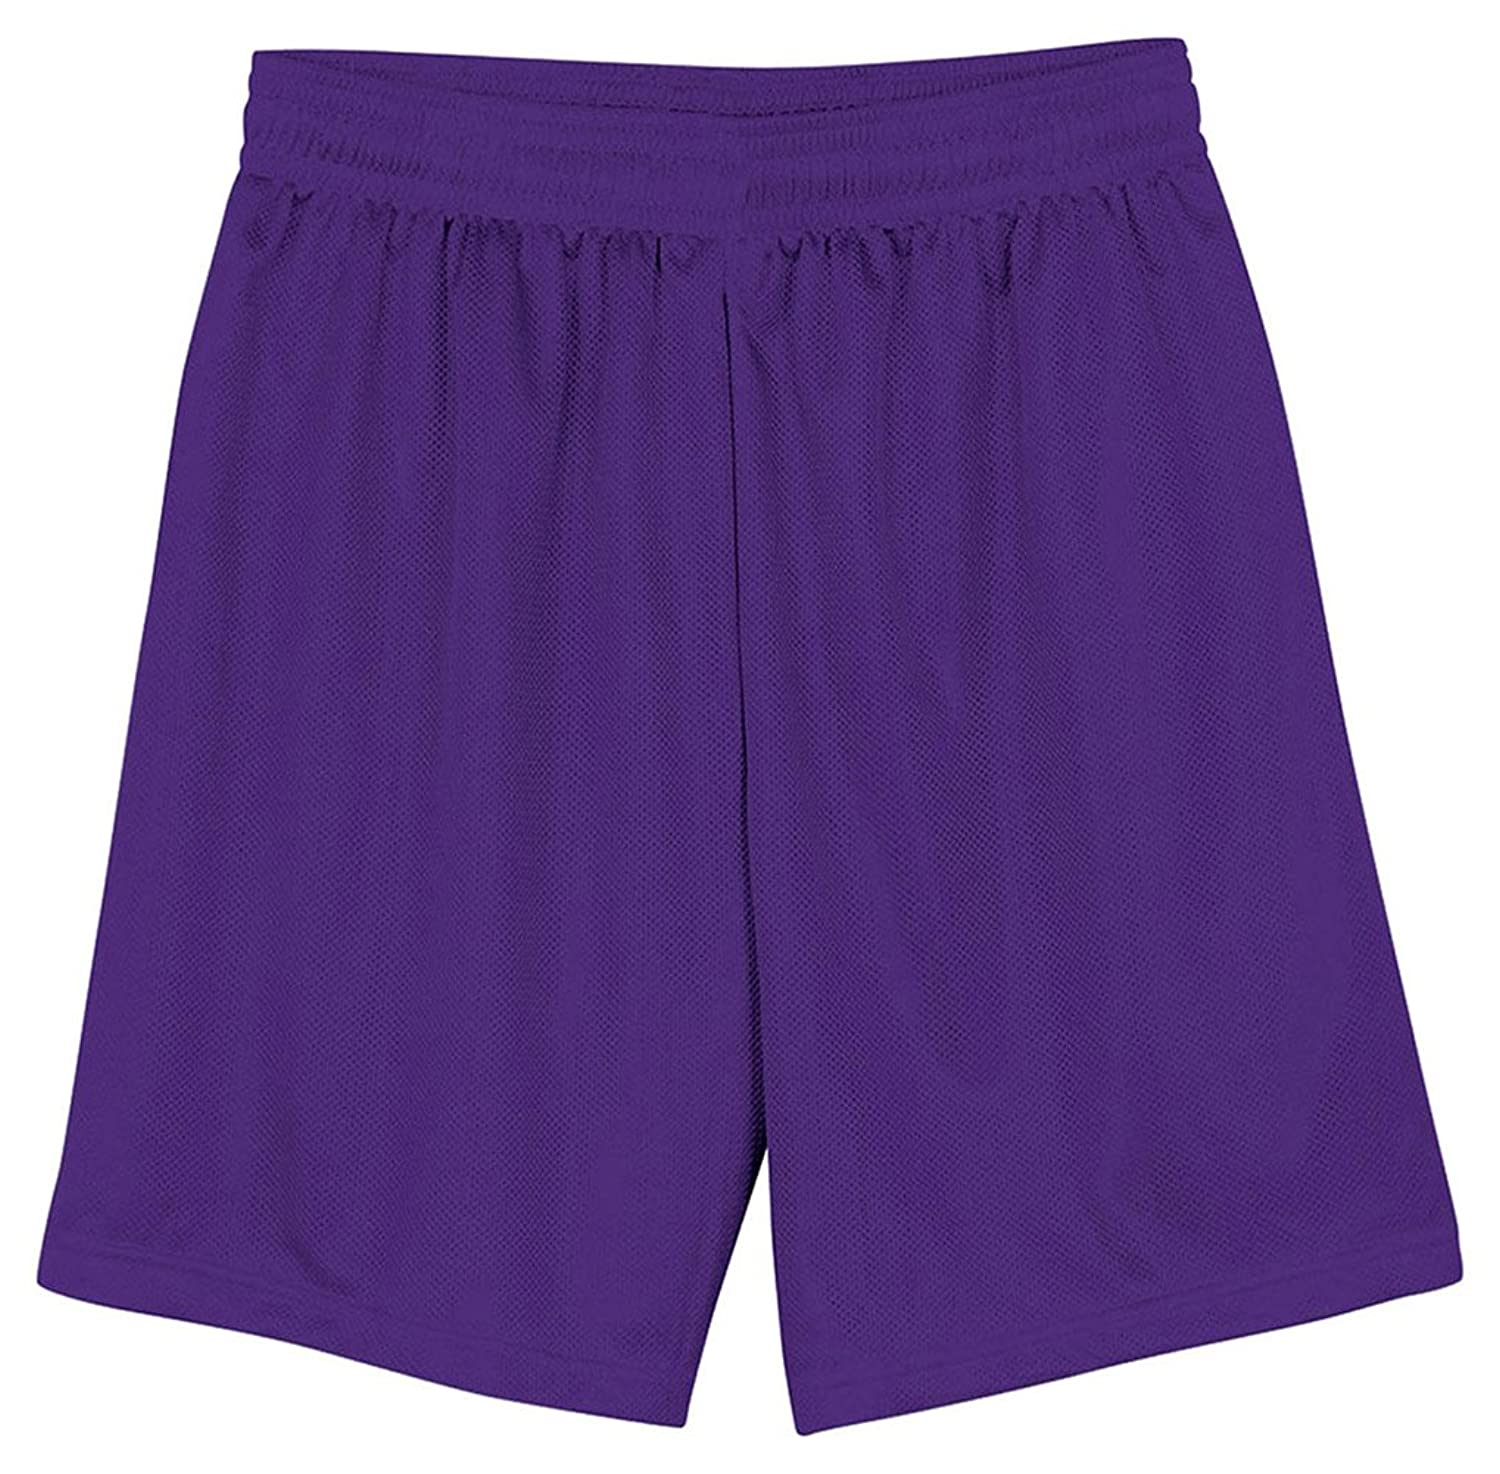 """A4 Adult 7"""" Lined Micromesh Shorts"""